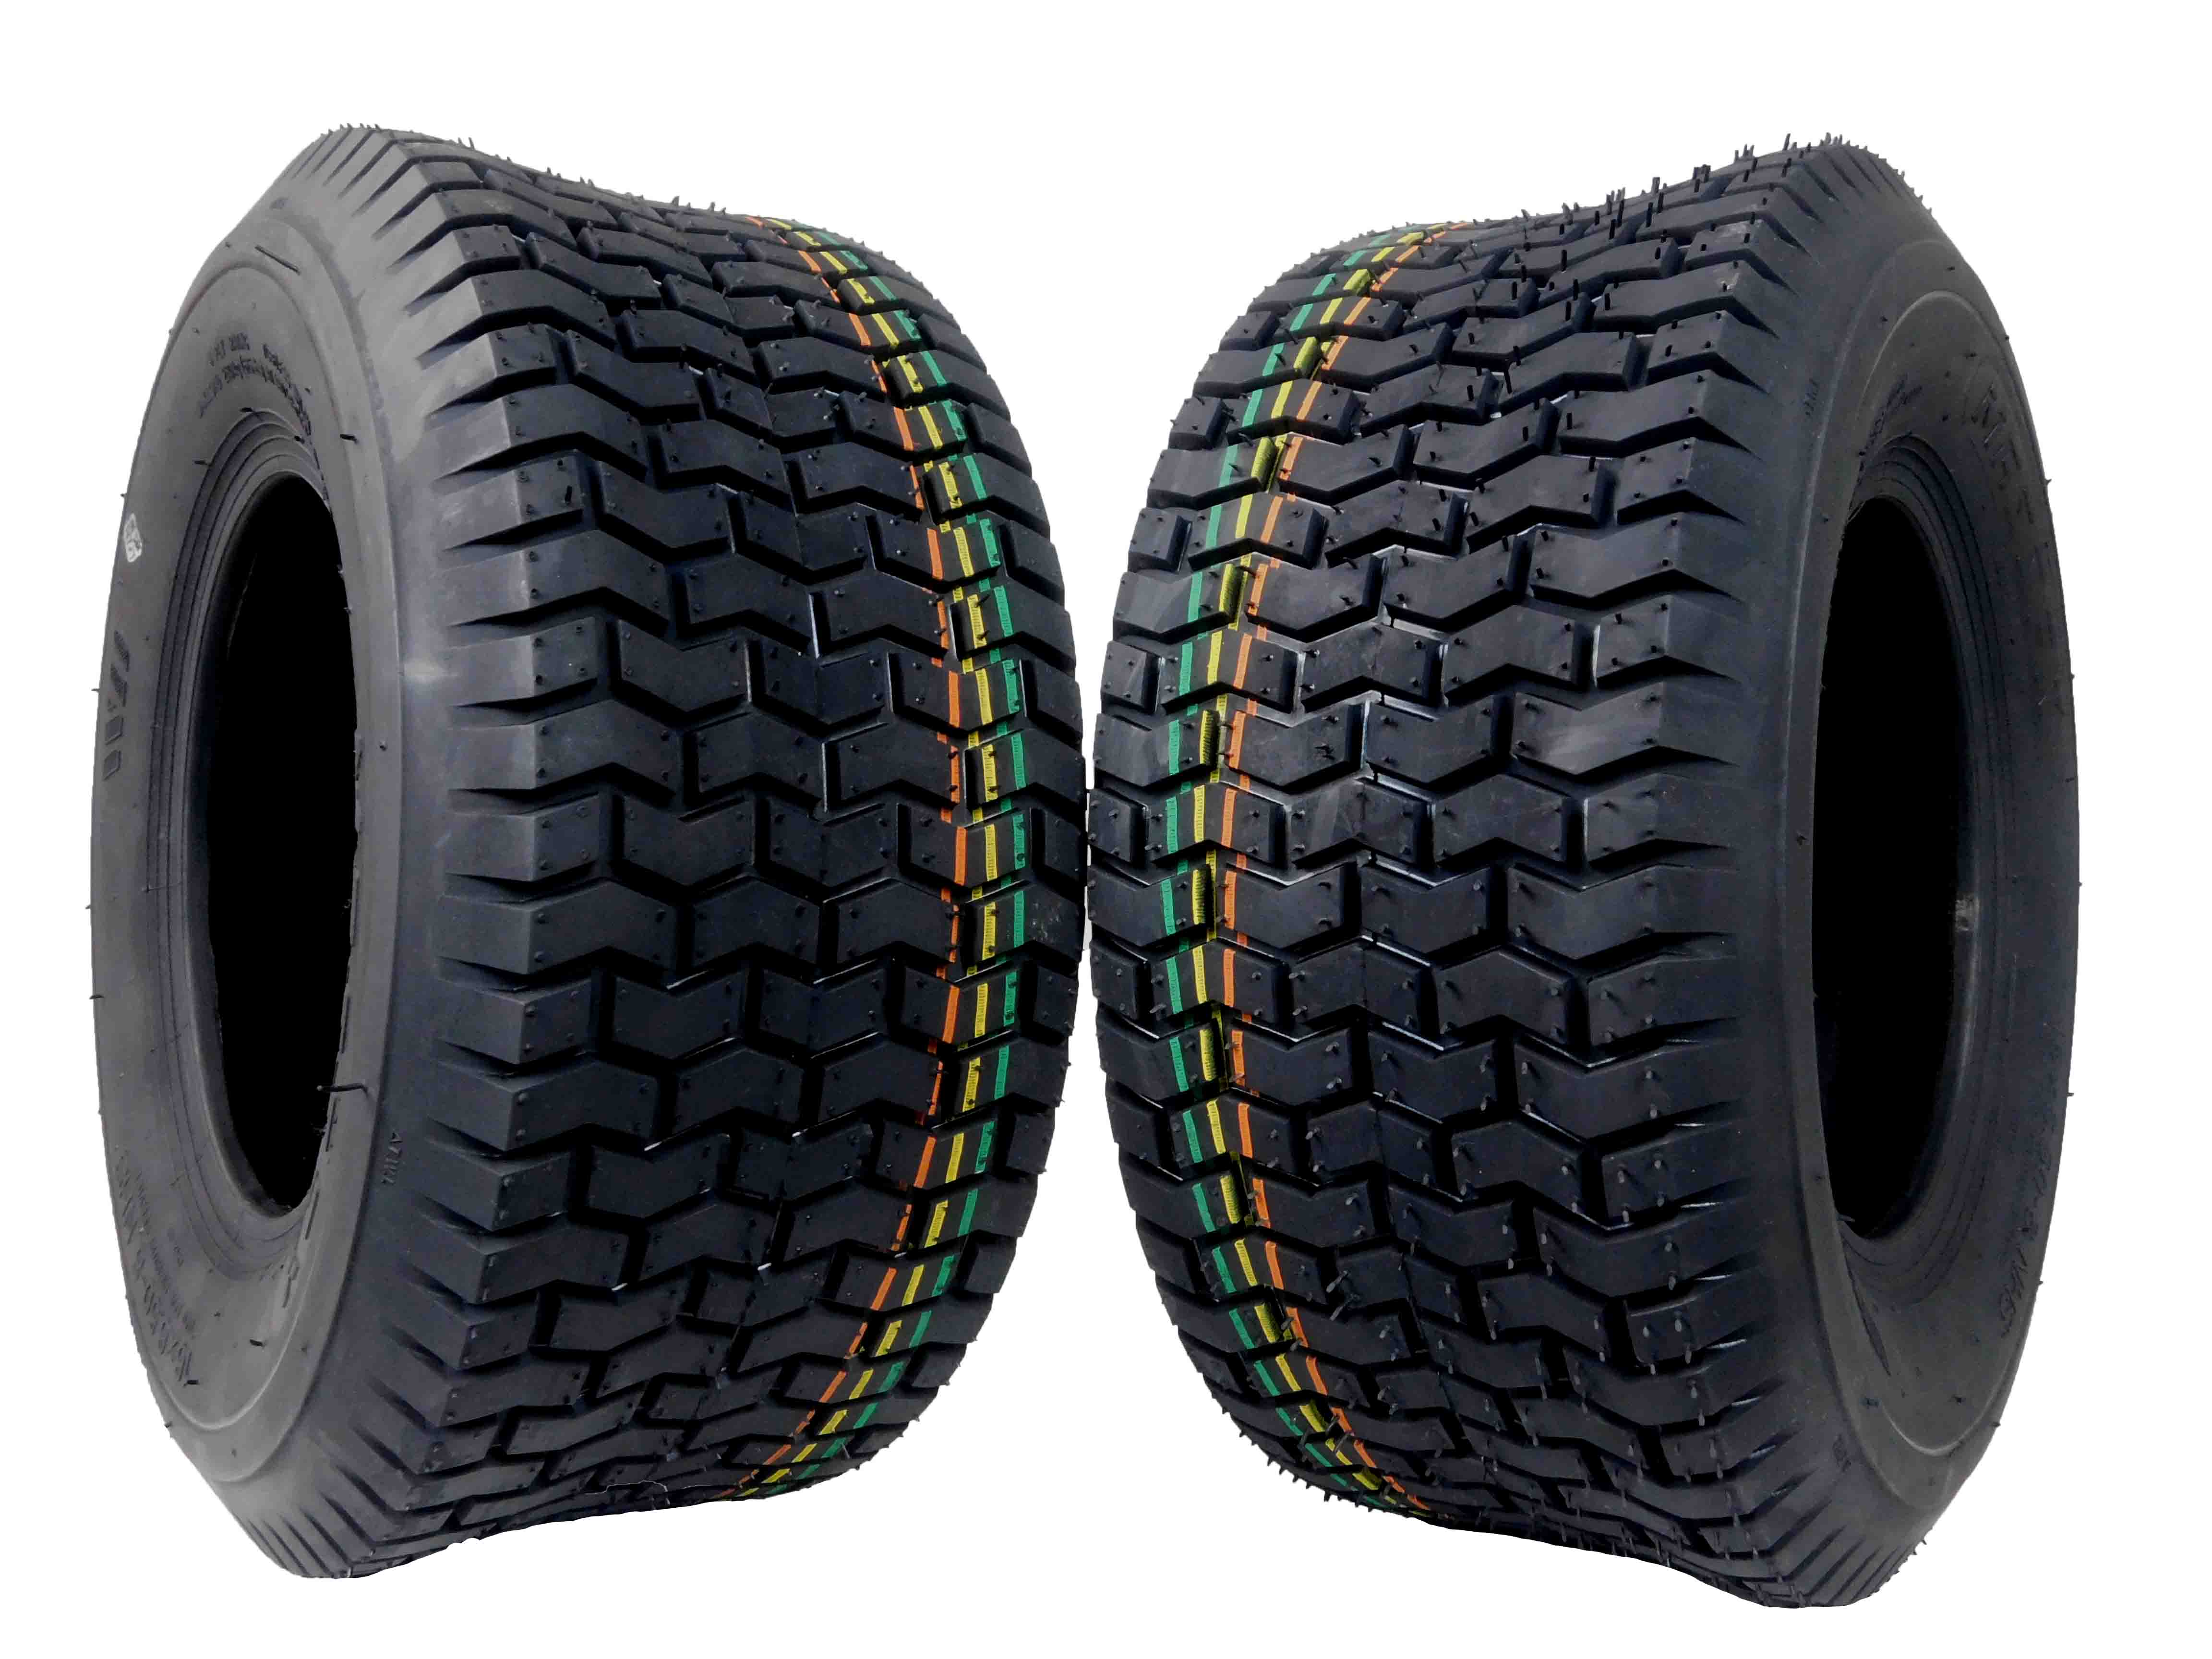 MASSFX-16x6.5-8-Go-Kart-Tires-4ply-2-Pack-image-1